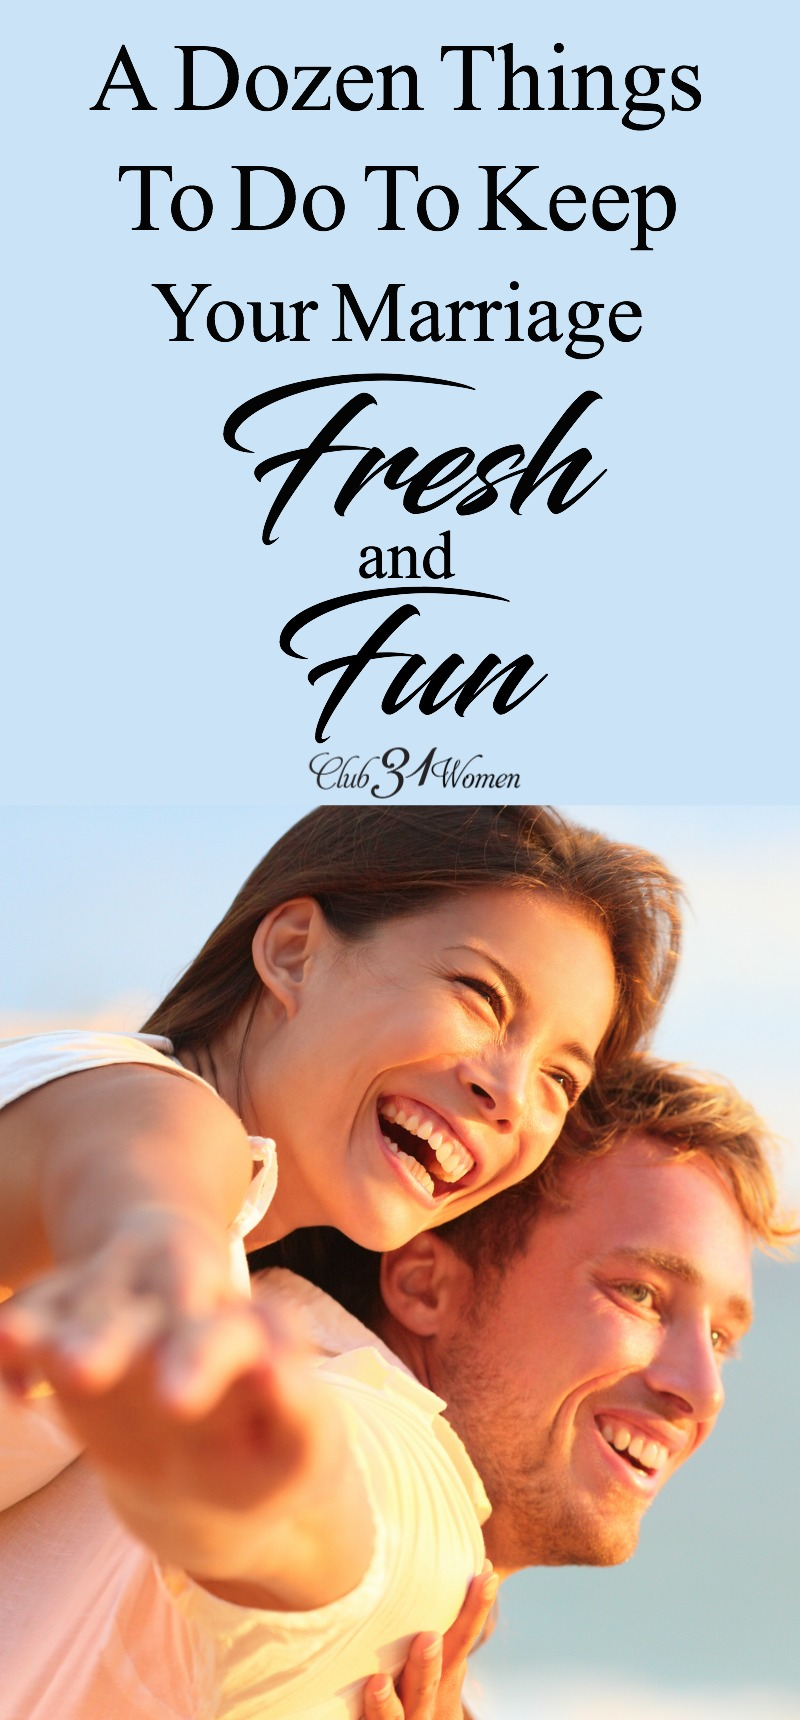 Ever feel like you and he are stuck in a rut? Or weighed down with life's pressures? Here are some fun ways to freshen your marriage and restore the spark! via @Club31Women